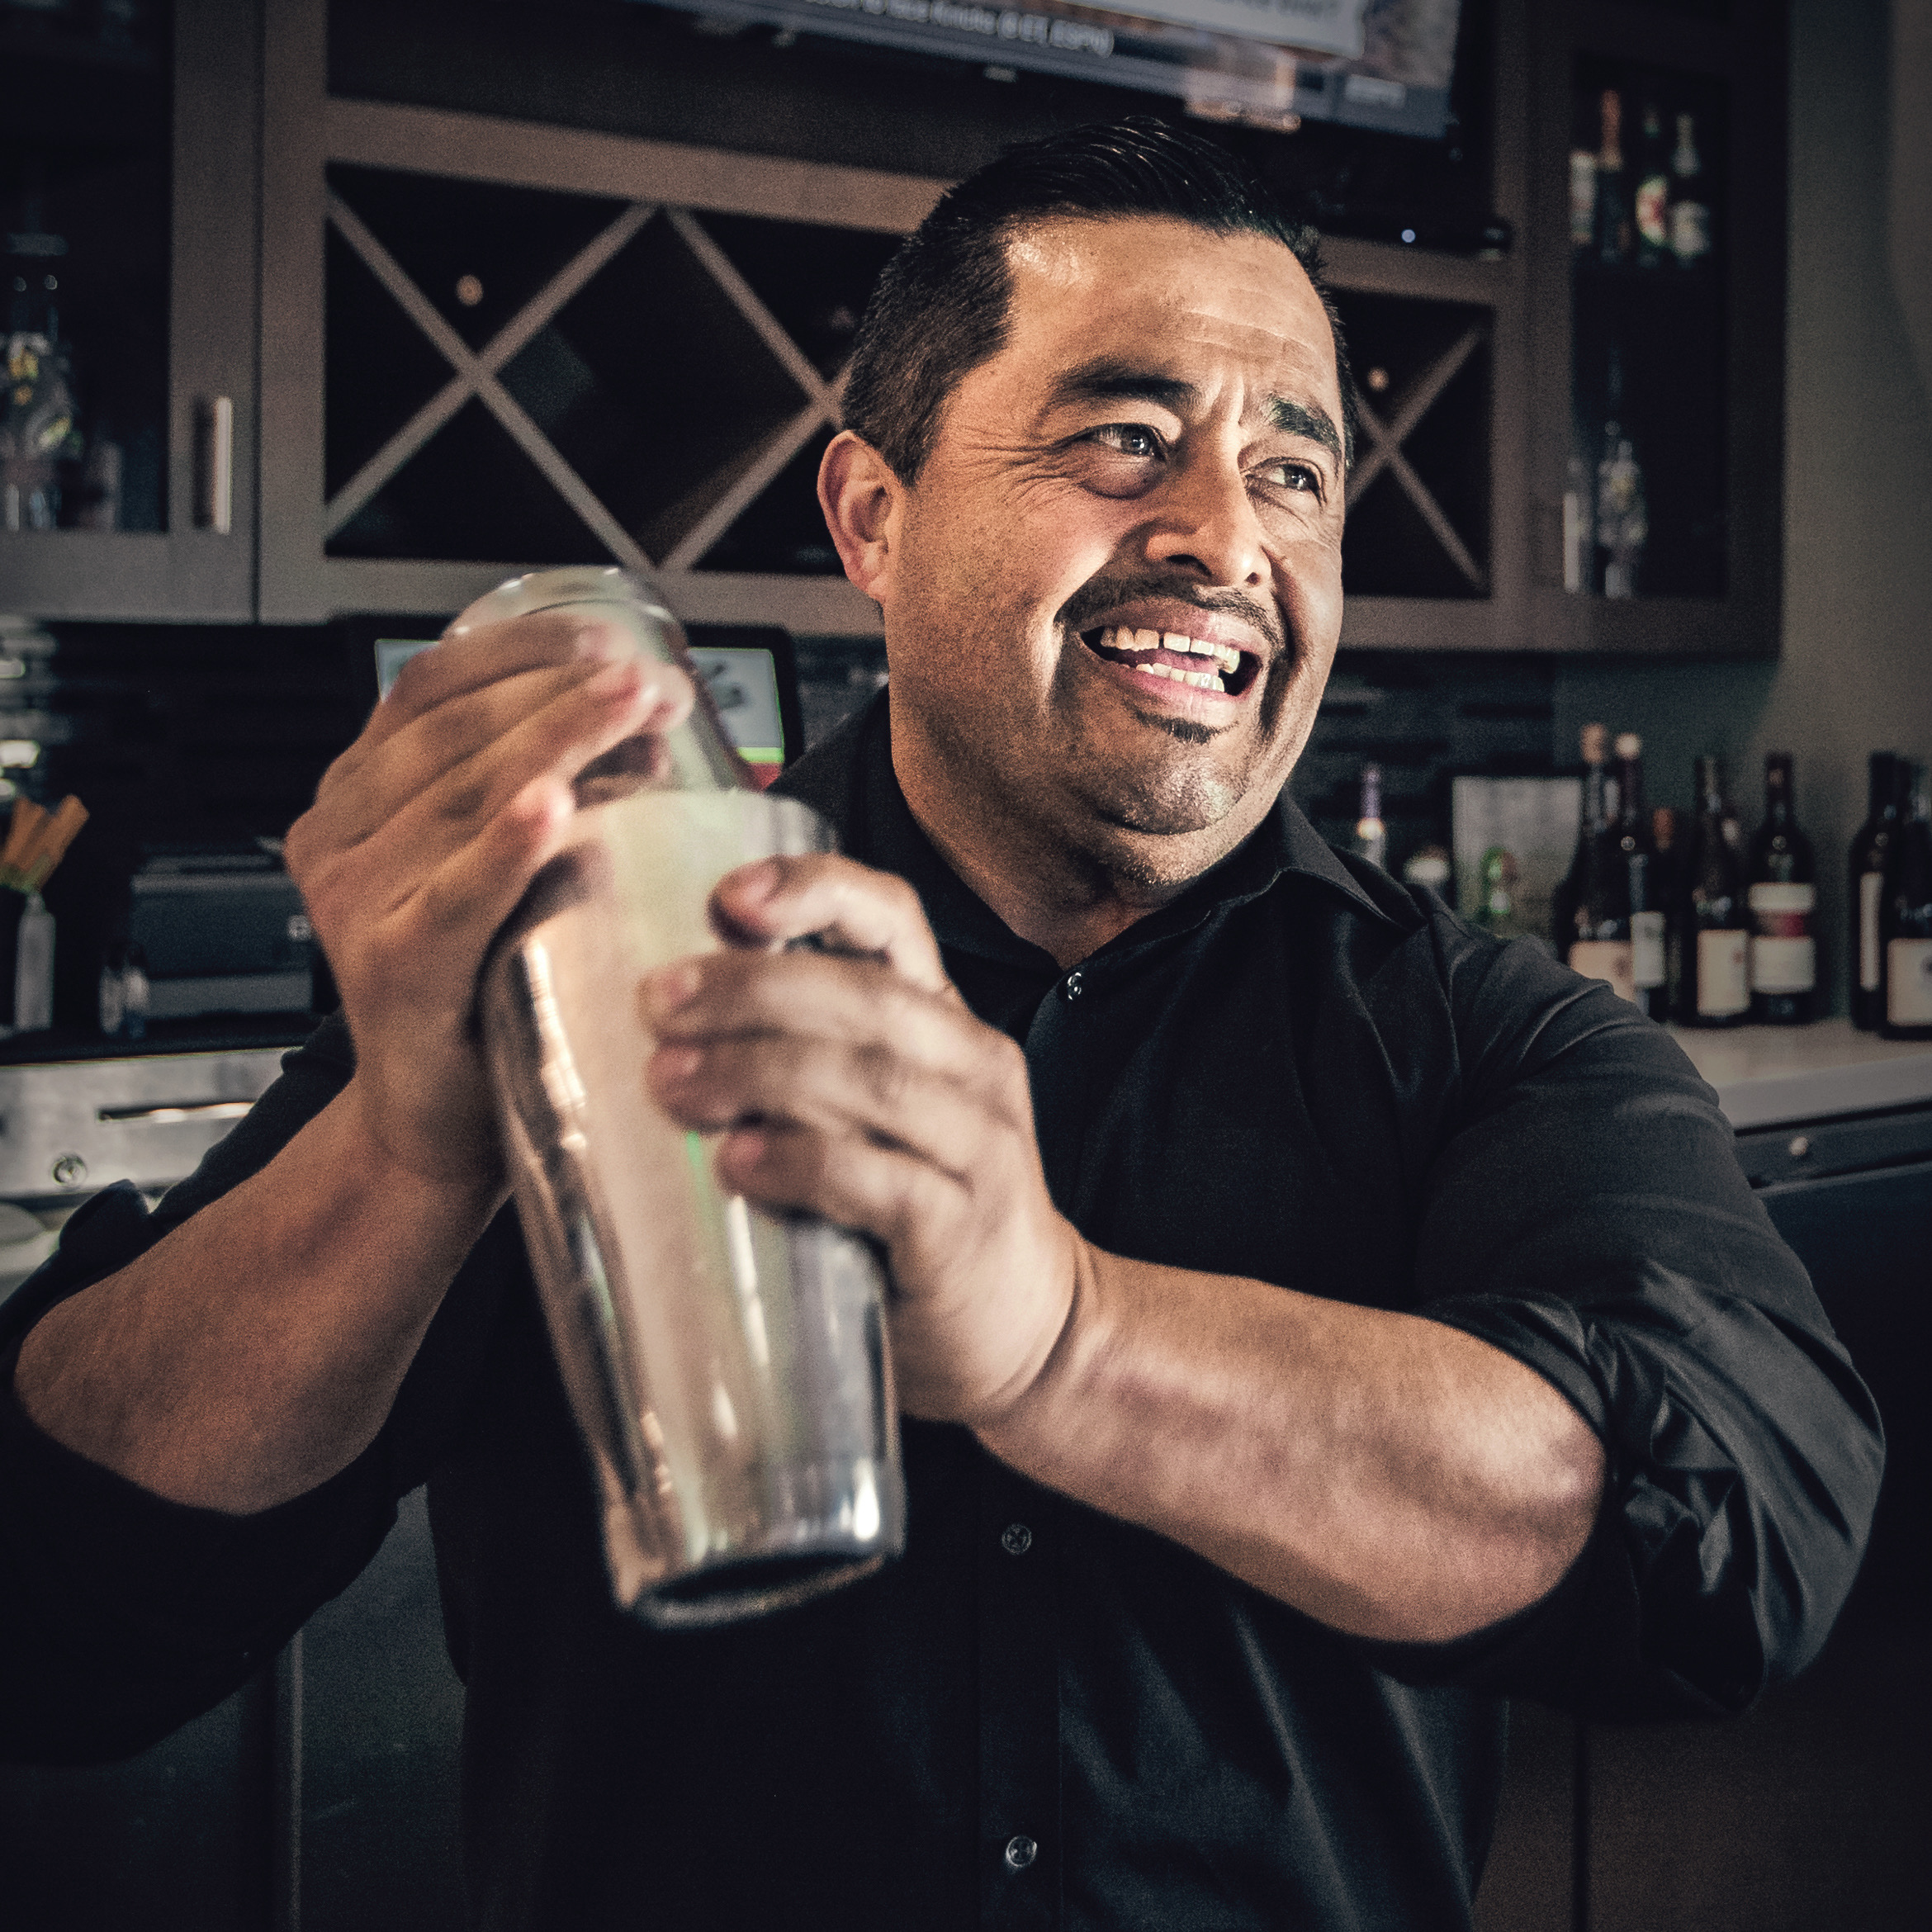 Food & Beverage Director Alex Martinez - Mixologist Alex Martinez has worked together with Chef Ofelio for the last 13 years. He has over a decade of experience managing restaurants and training a dedicated hospitality team to deliver the utmost level of service. He's motivated to please and will always go the extra mile to exceed his guests' expectations.Alex takes great pride in crafting seasonal cocktails using fresh, house-made ingredients from local farmers and partners with local distilleries to source many of their spirits. All syrups and juices are made from scratch and each cocktail is thoughtfully prepared by Alex and his team to deliver only the highest quality drinks made with care.